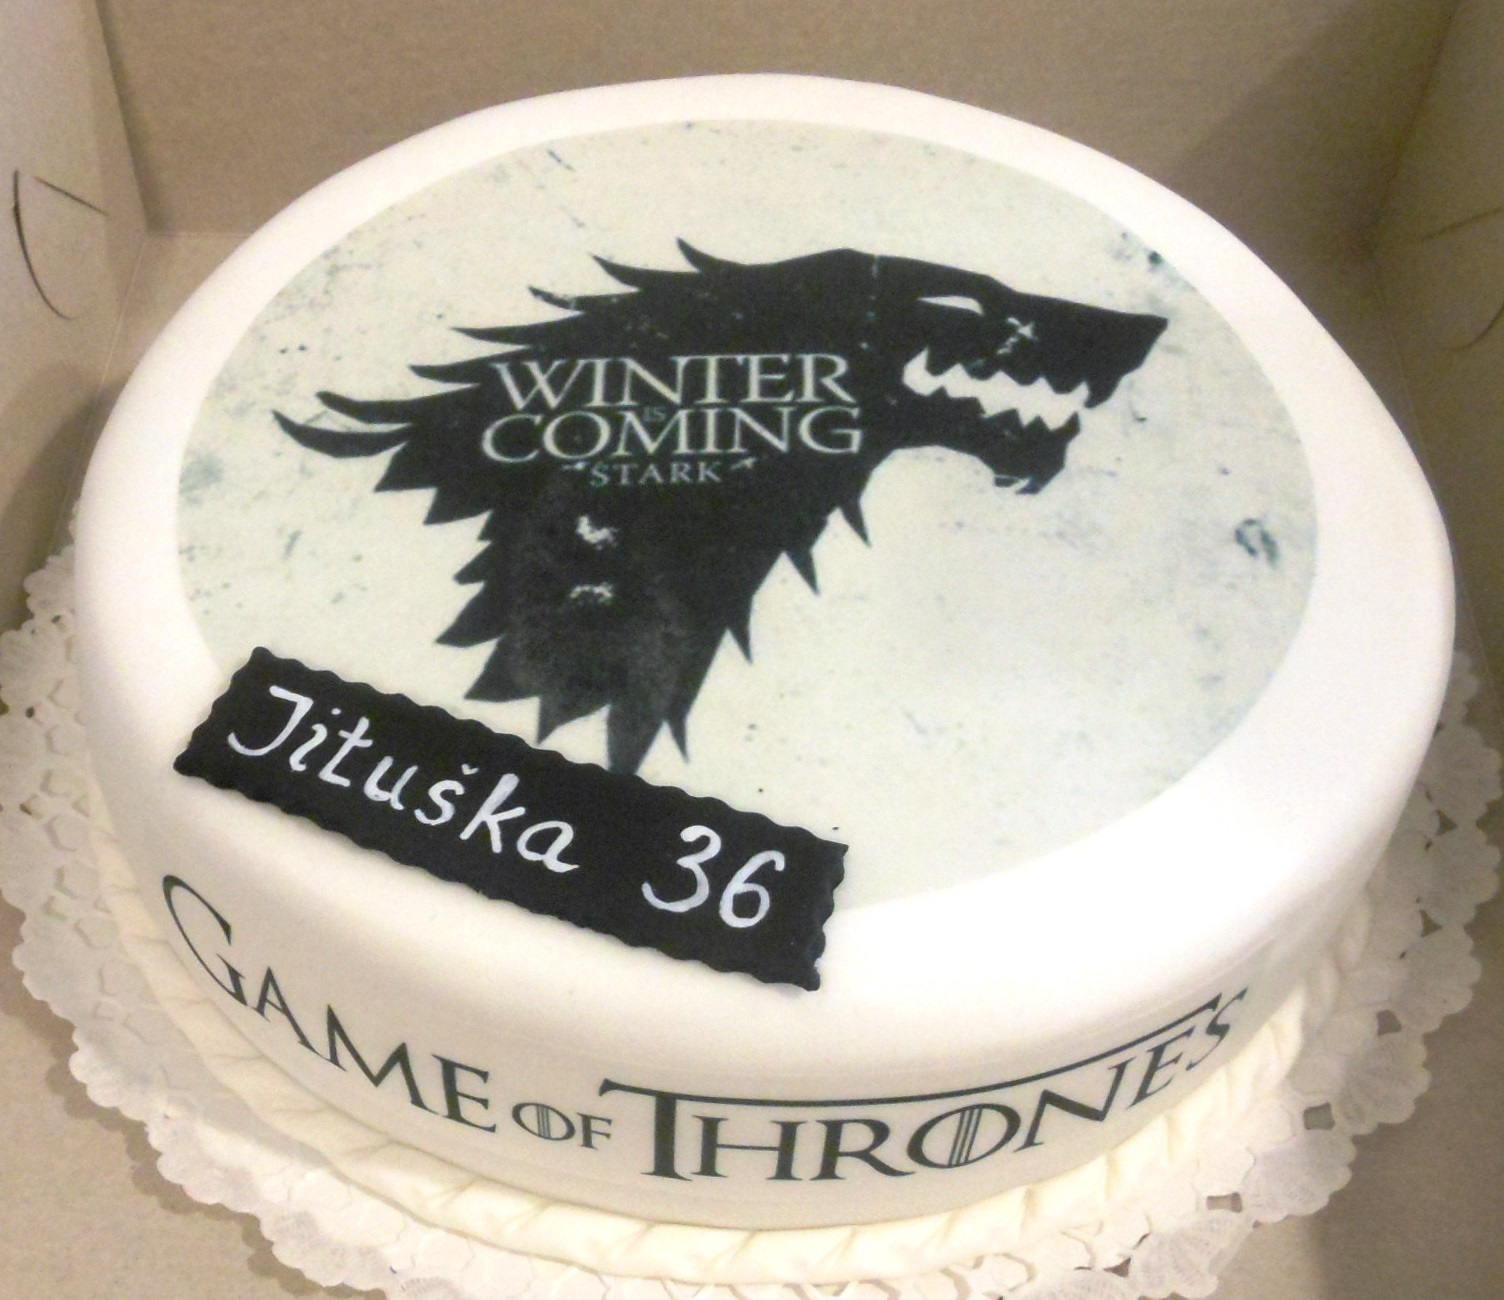 Torta Game of Thrones